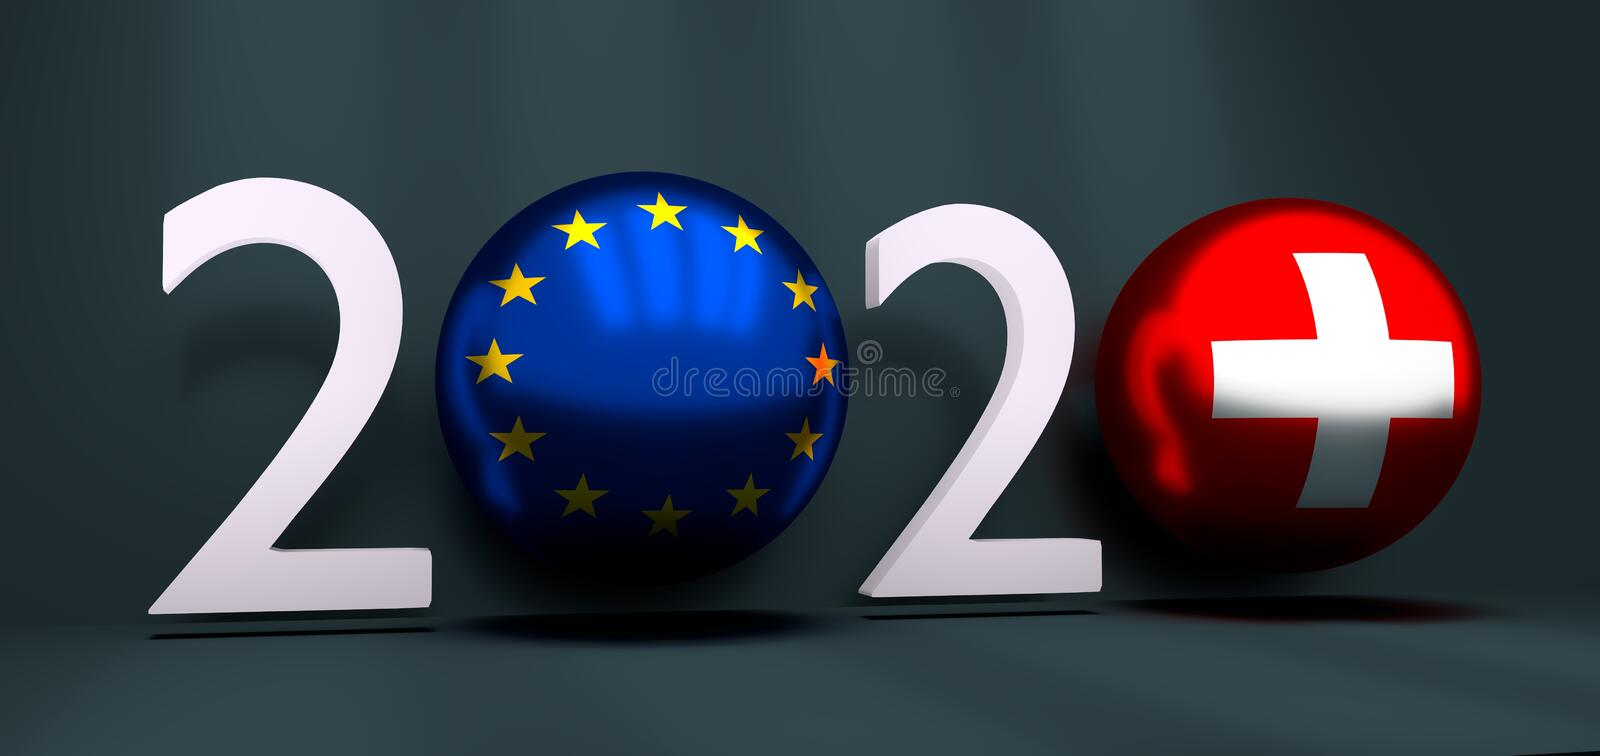 2020 new year concept vector illustration